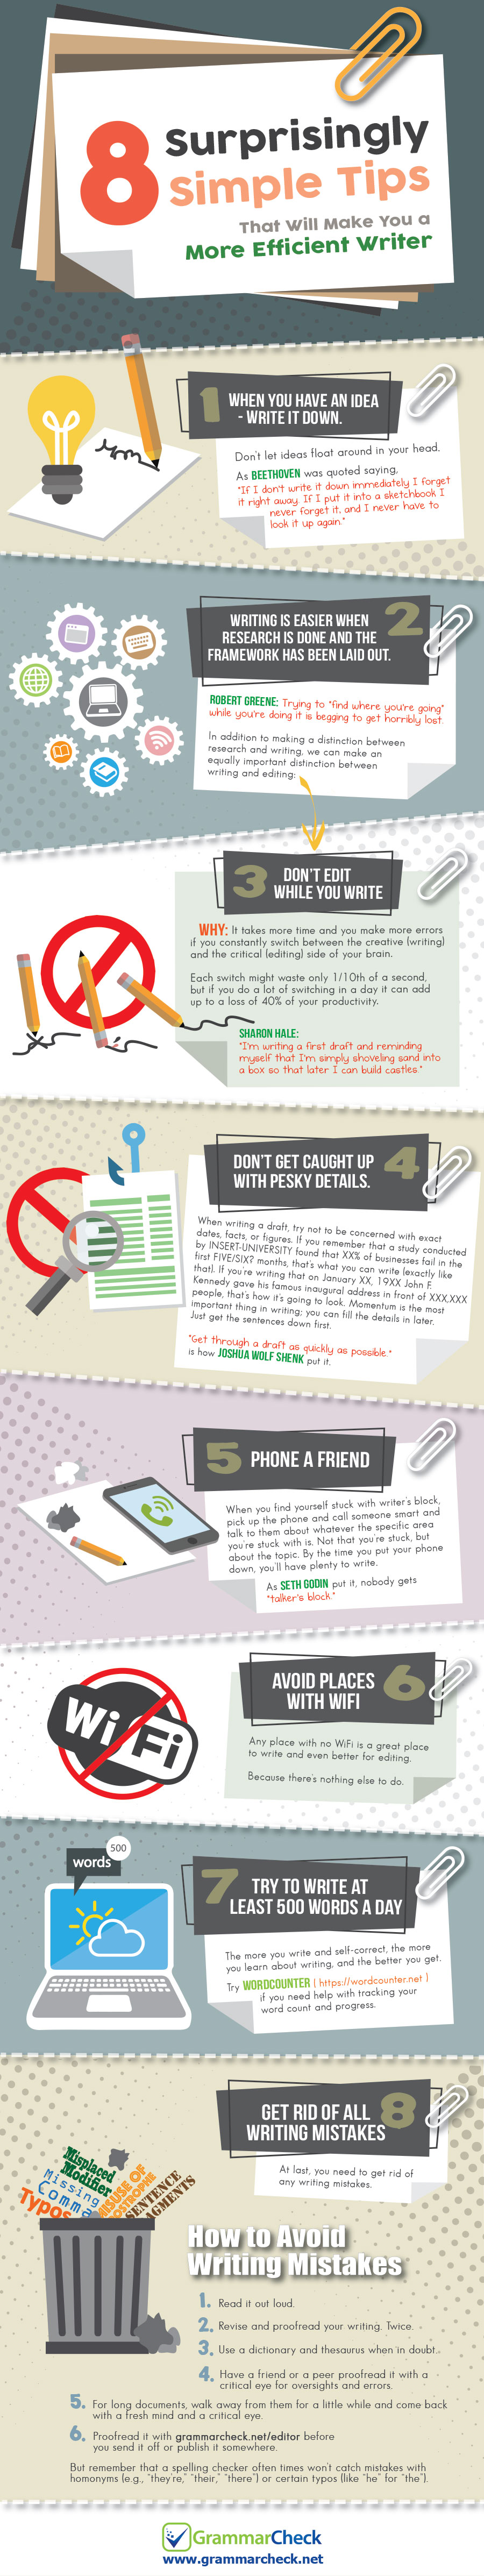 8 Surprisingly Simple Tips That Will Make You a More Efficient Writer (Infographic)